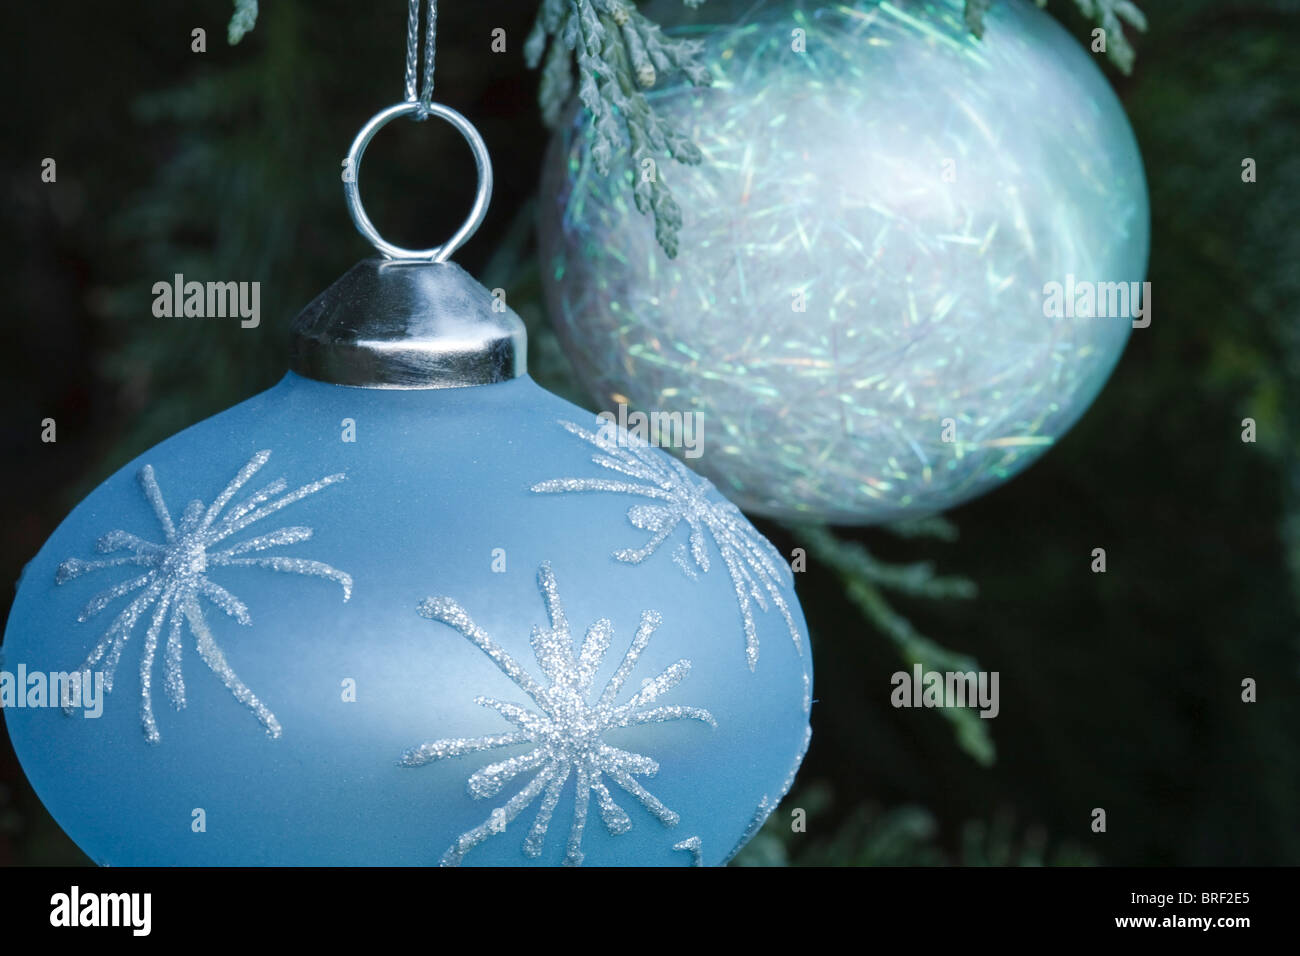 Closeup of blue and white christmas decorations - Stock Image